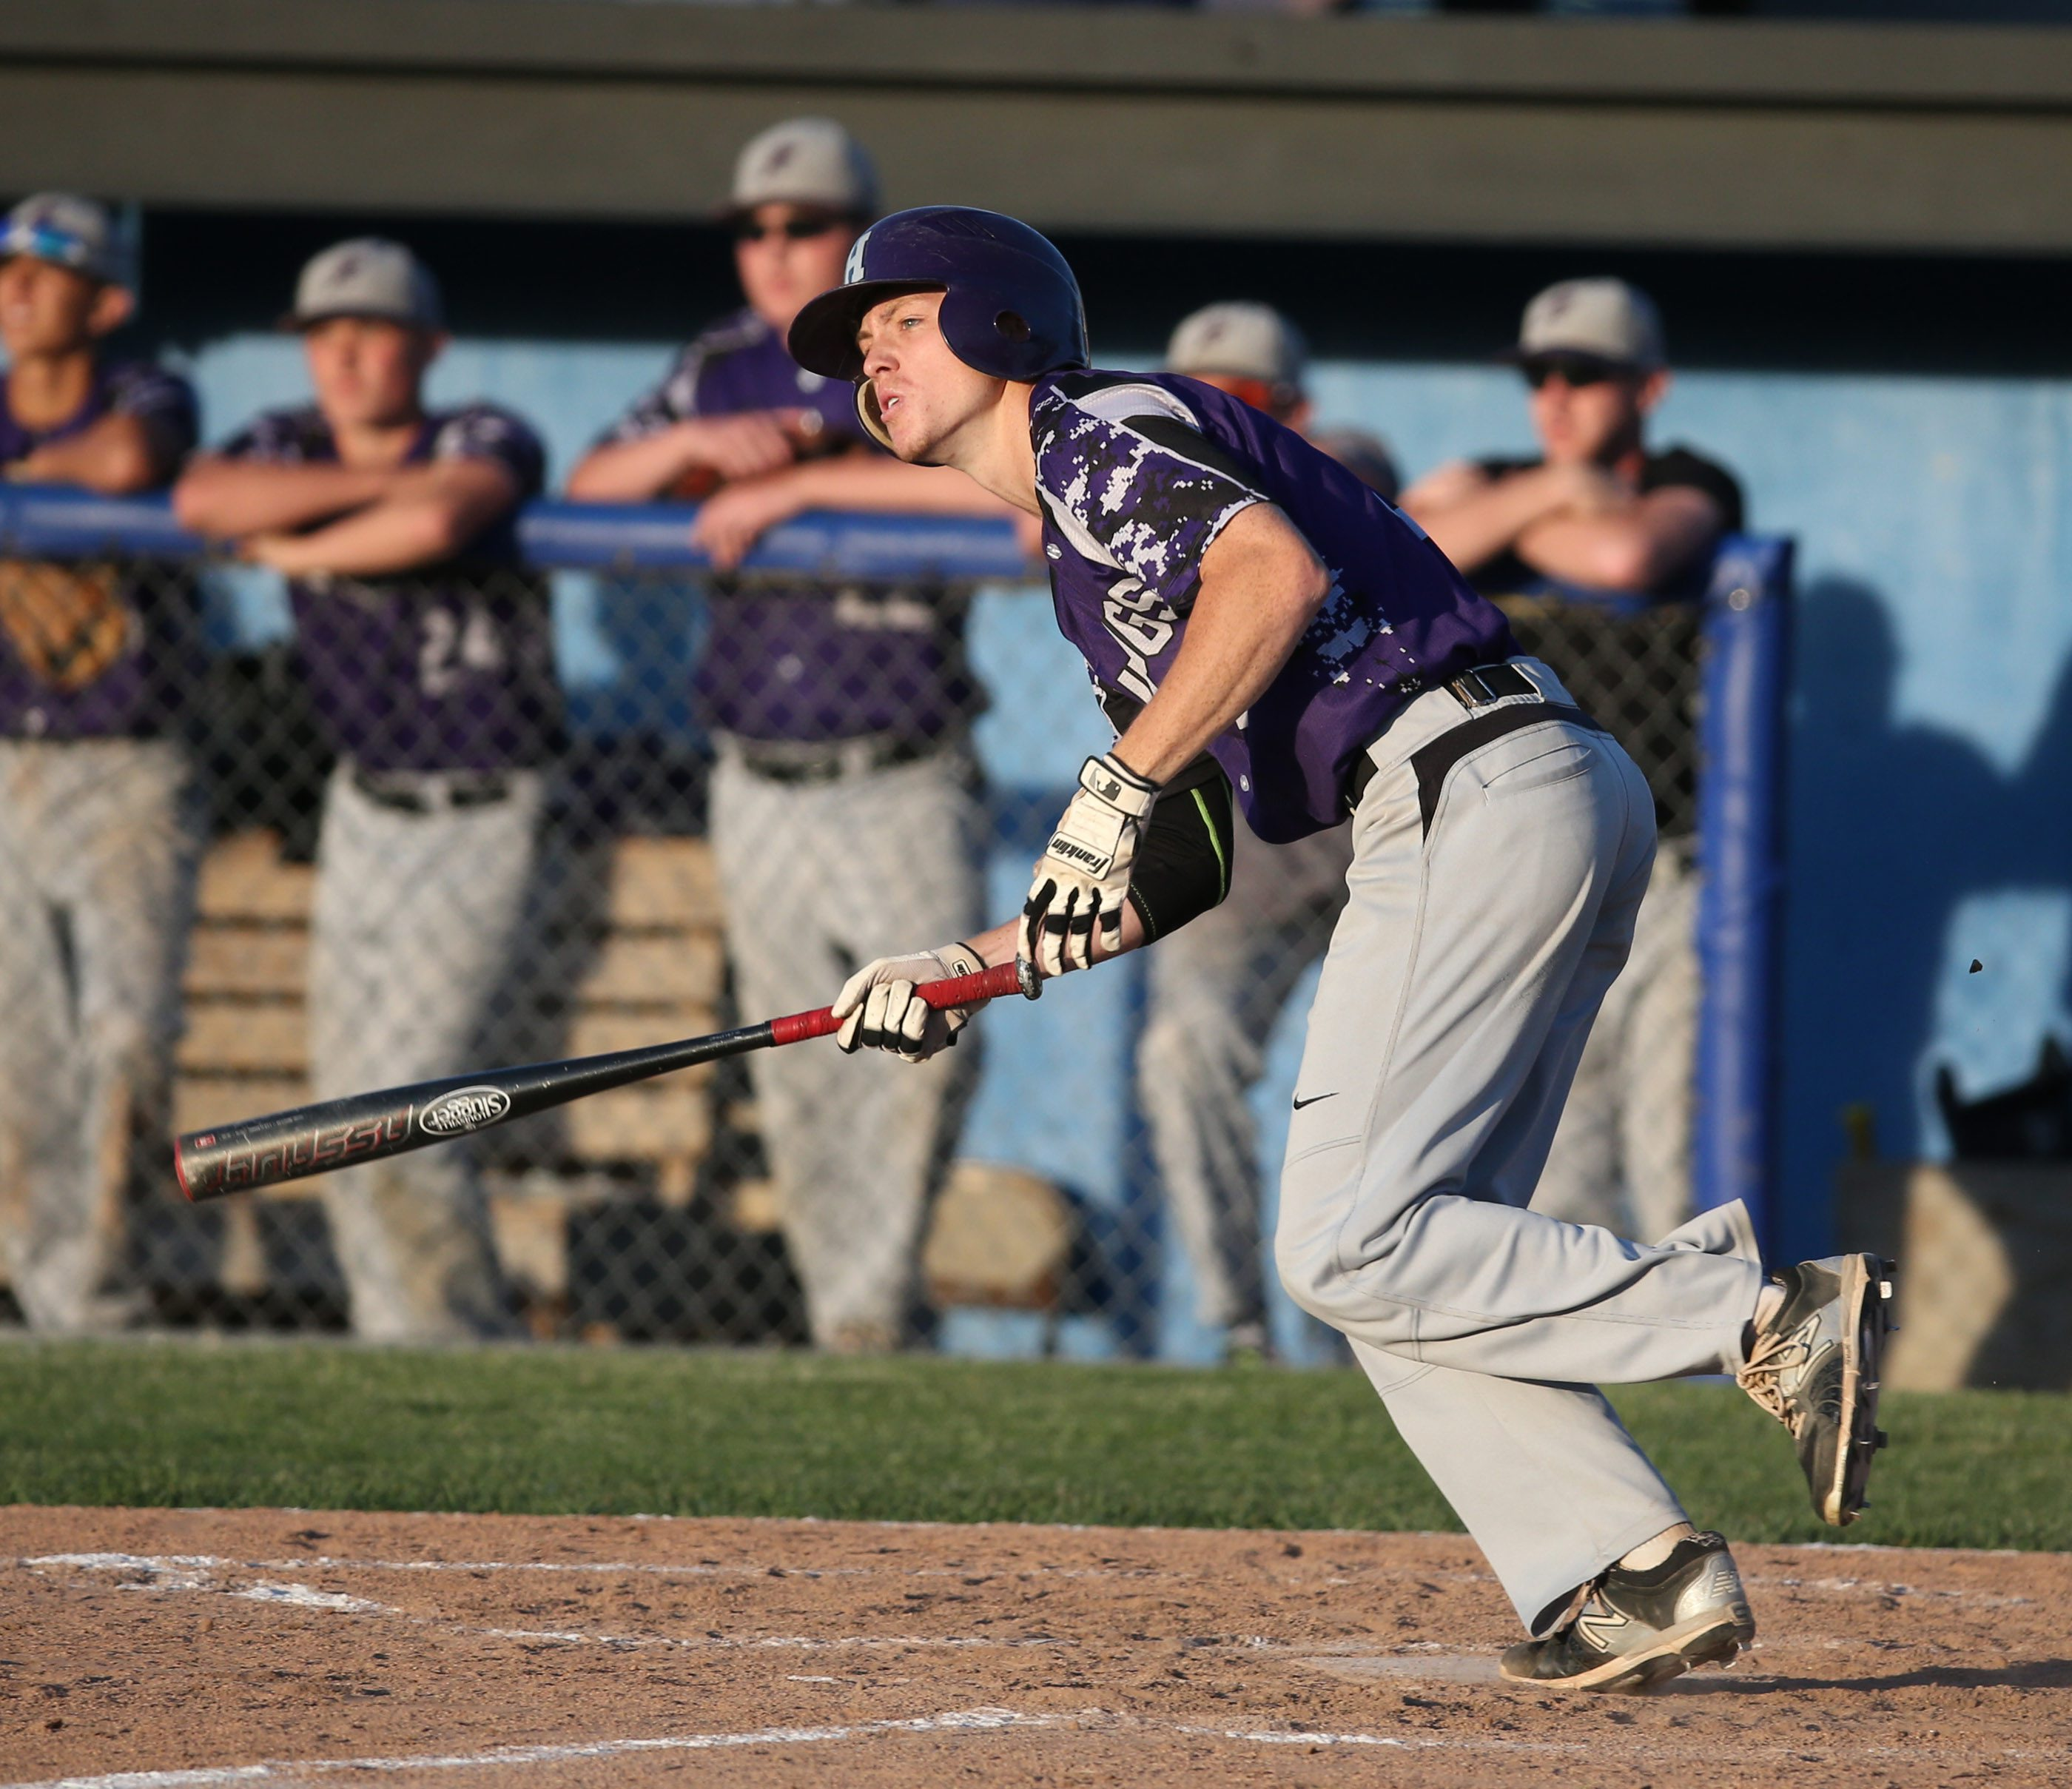 Hamburg rode the bat and pitching arm of first team all-state selection Cam Ringo to its first state final four. (James P. McCoy / Buffalo News file photo)